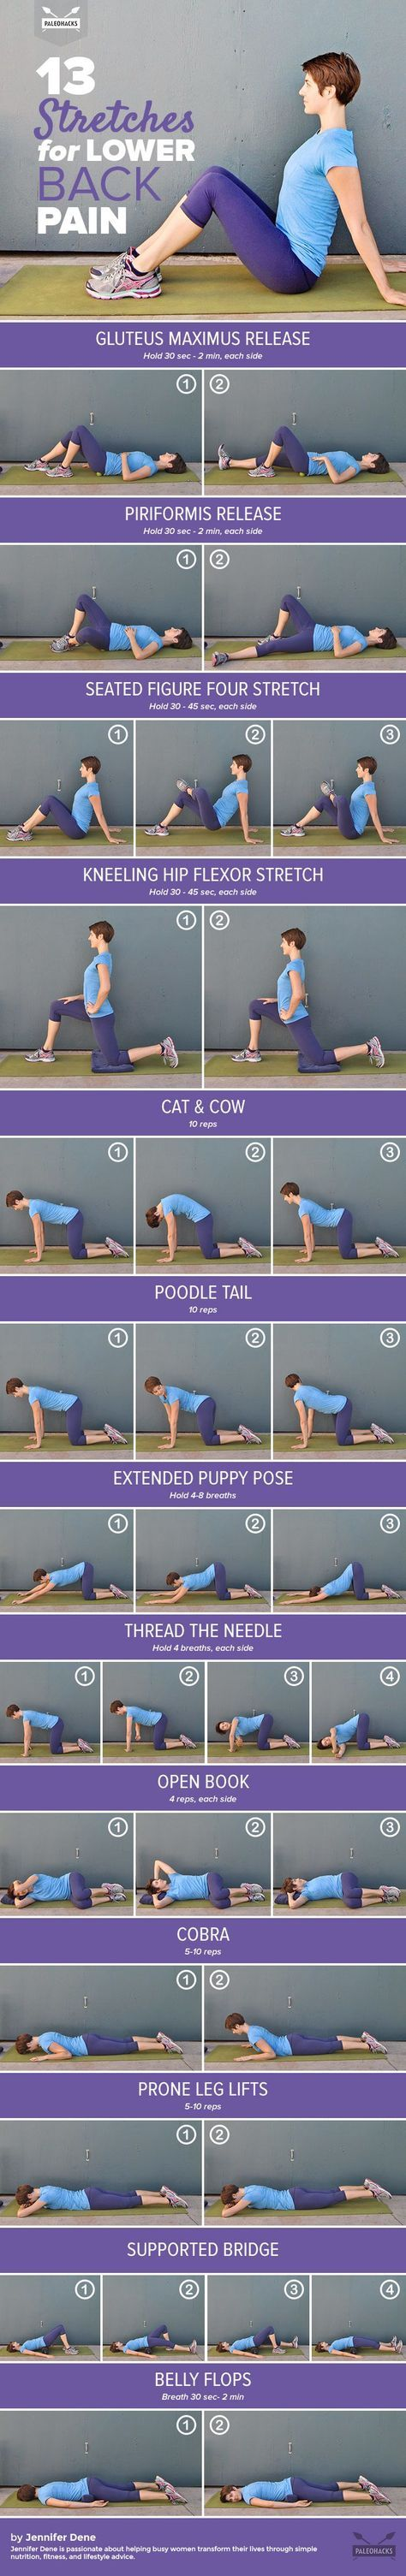 Relieve your lower back pain with these gentle yet effective stretches.